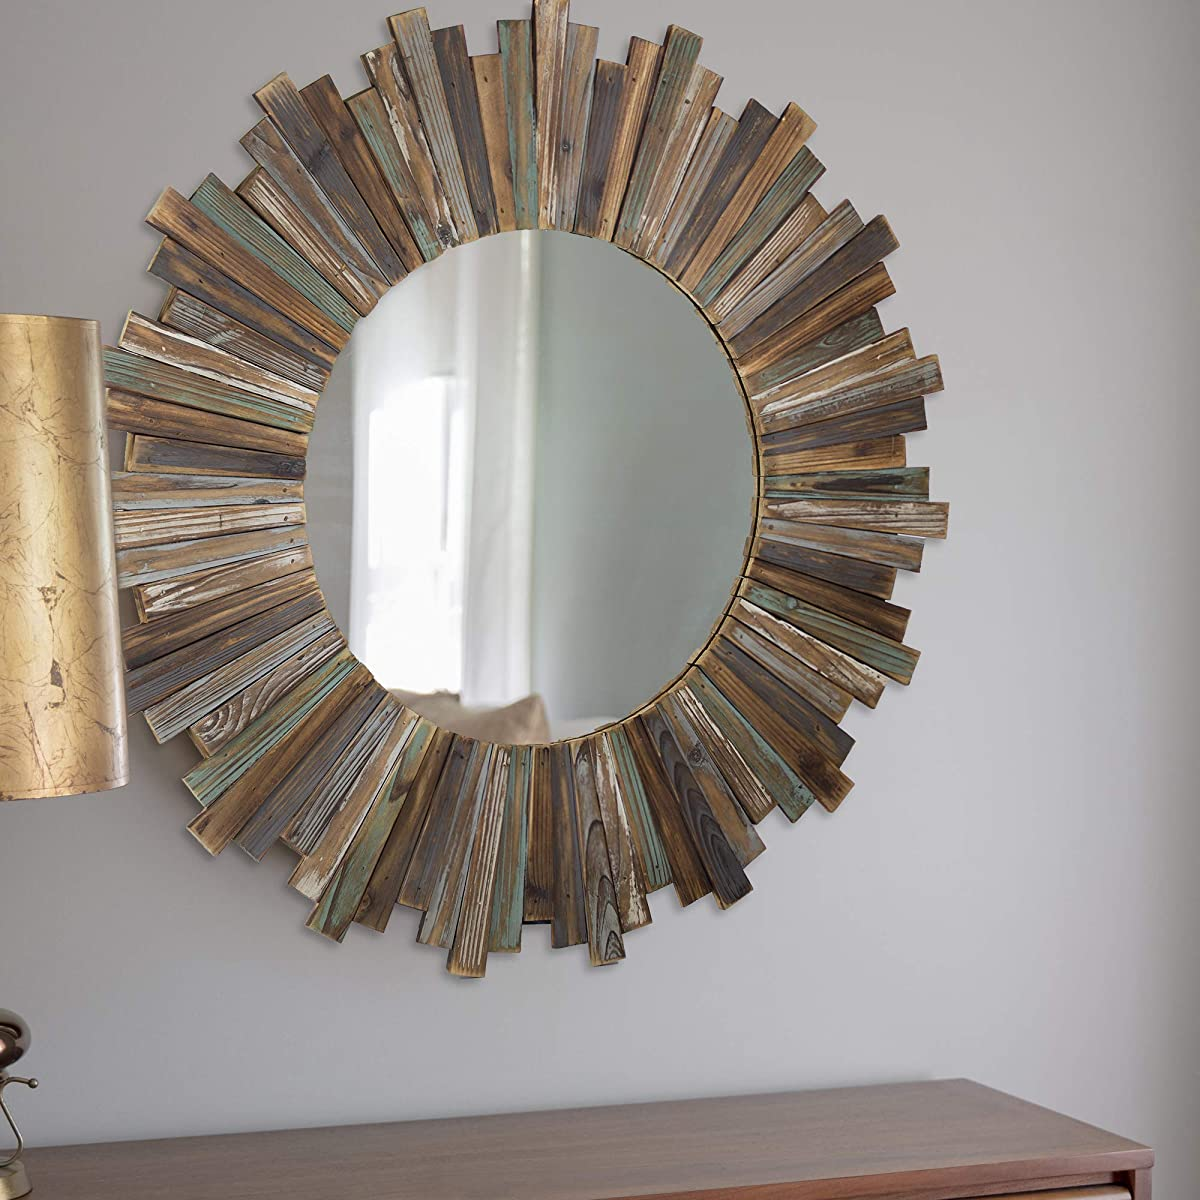 "American Art Decor Rustic & Distressed Wood 36"" Round Sunburst Wall Vanity Accent Mirror"